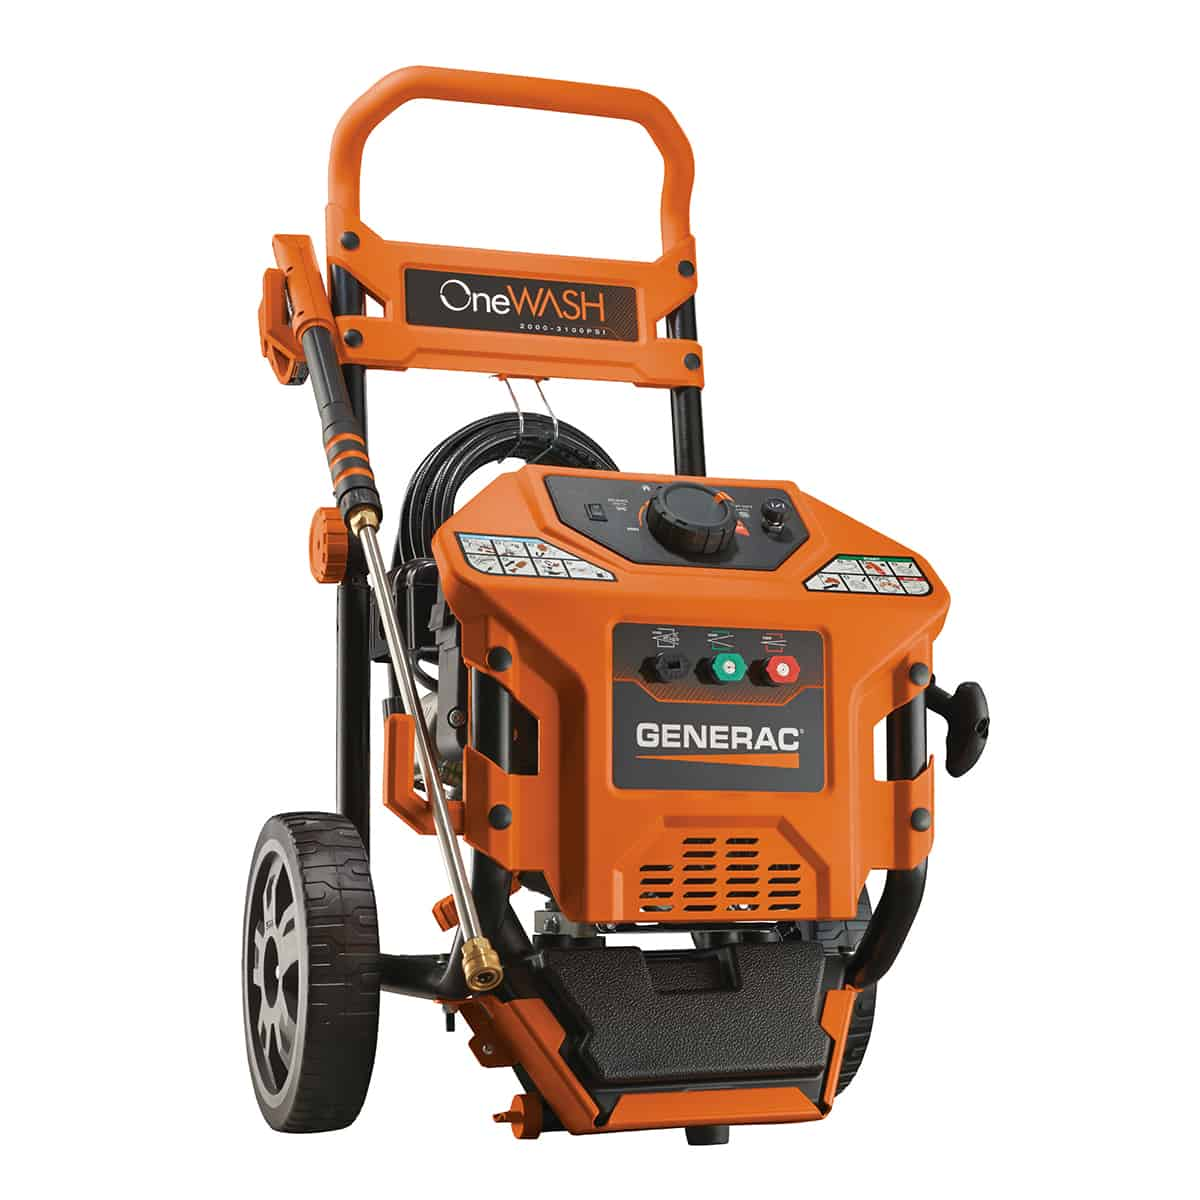 Generac One Wash 2000 to 3100 psi Residential Power Washer 6602